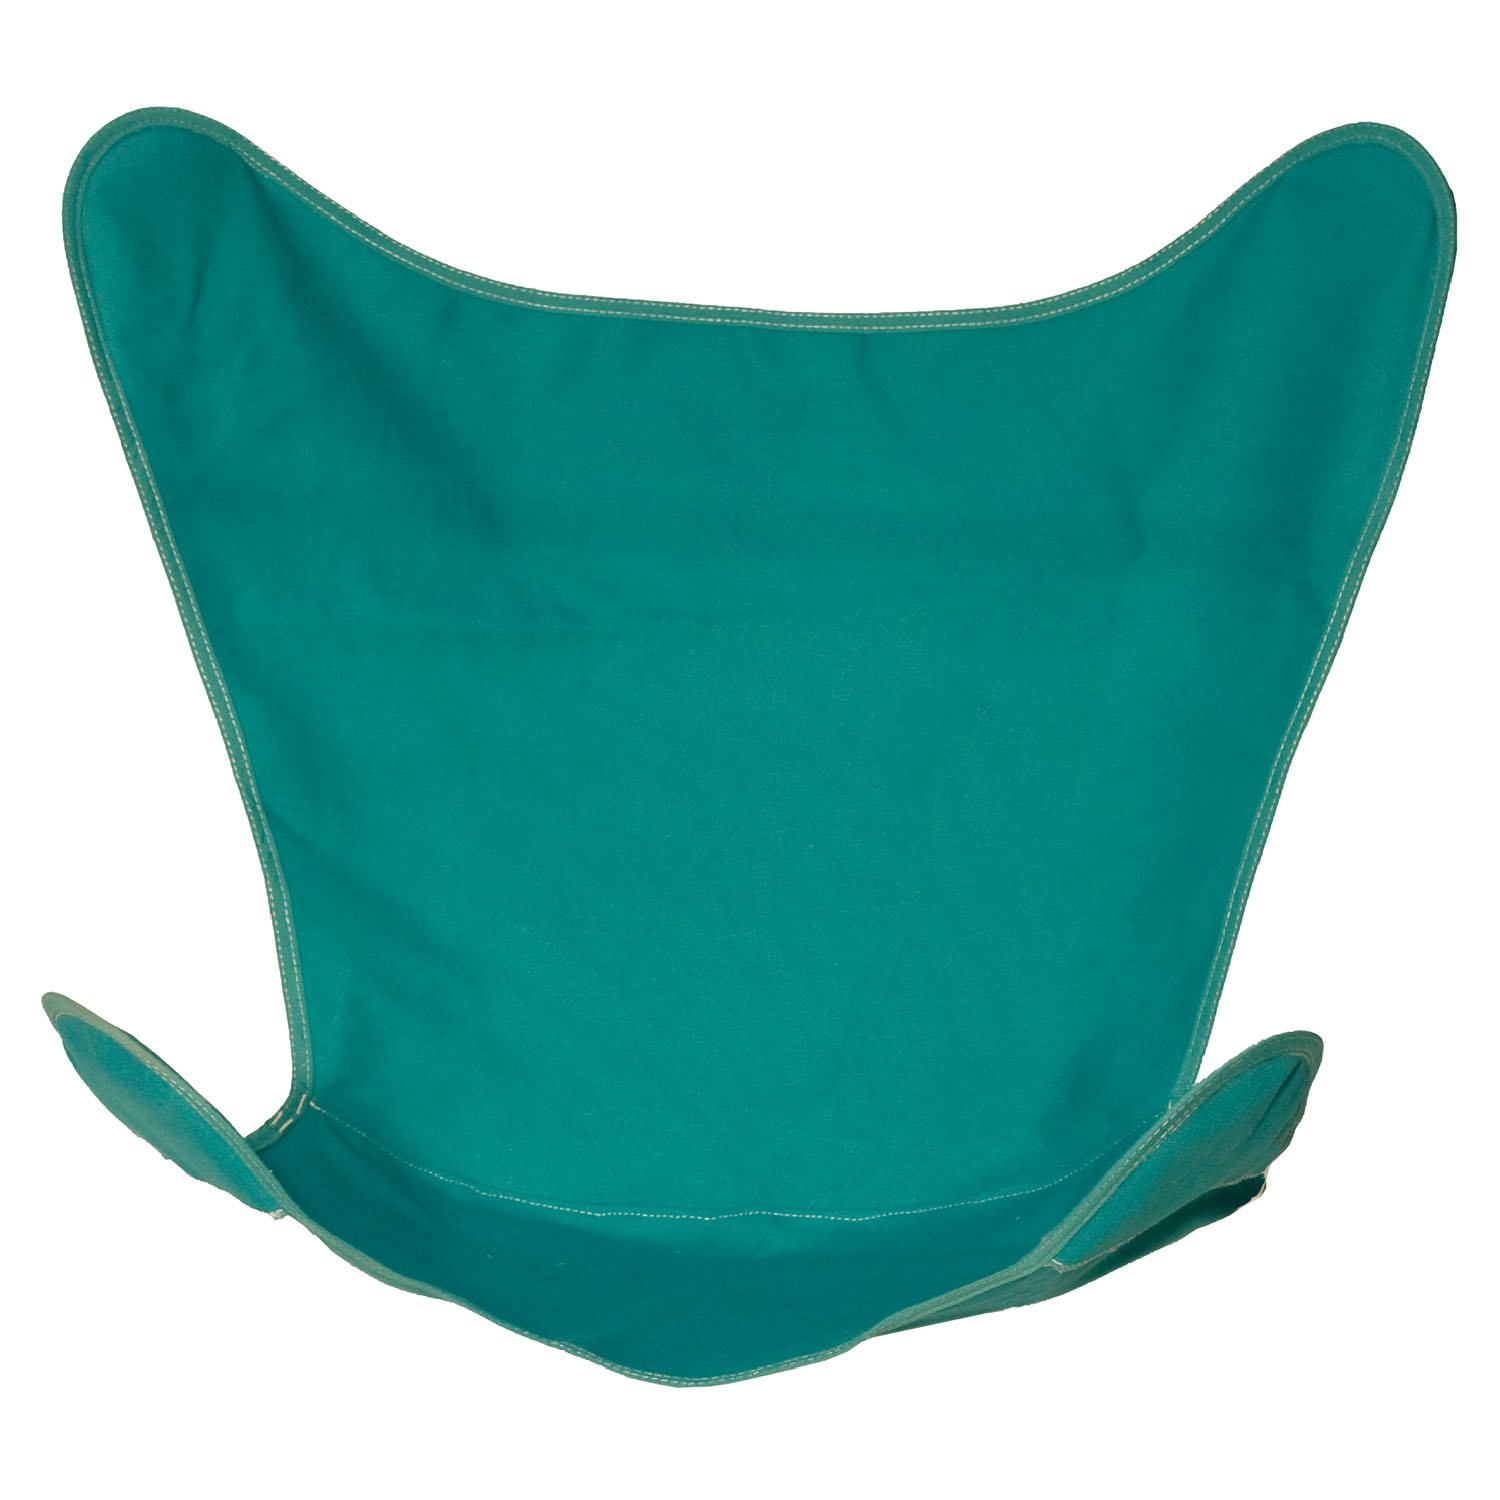 Replacement Cover for Butterfly Chair – Teal